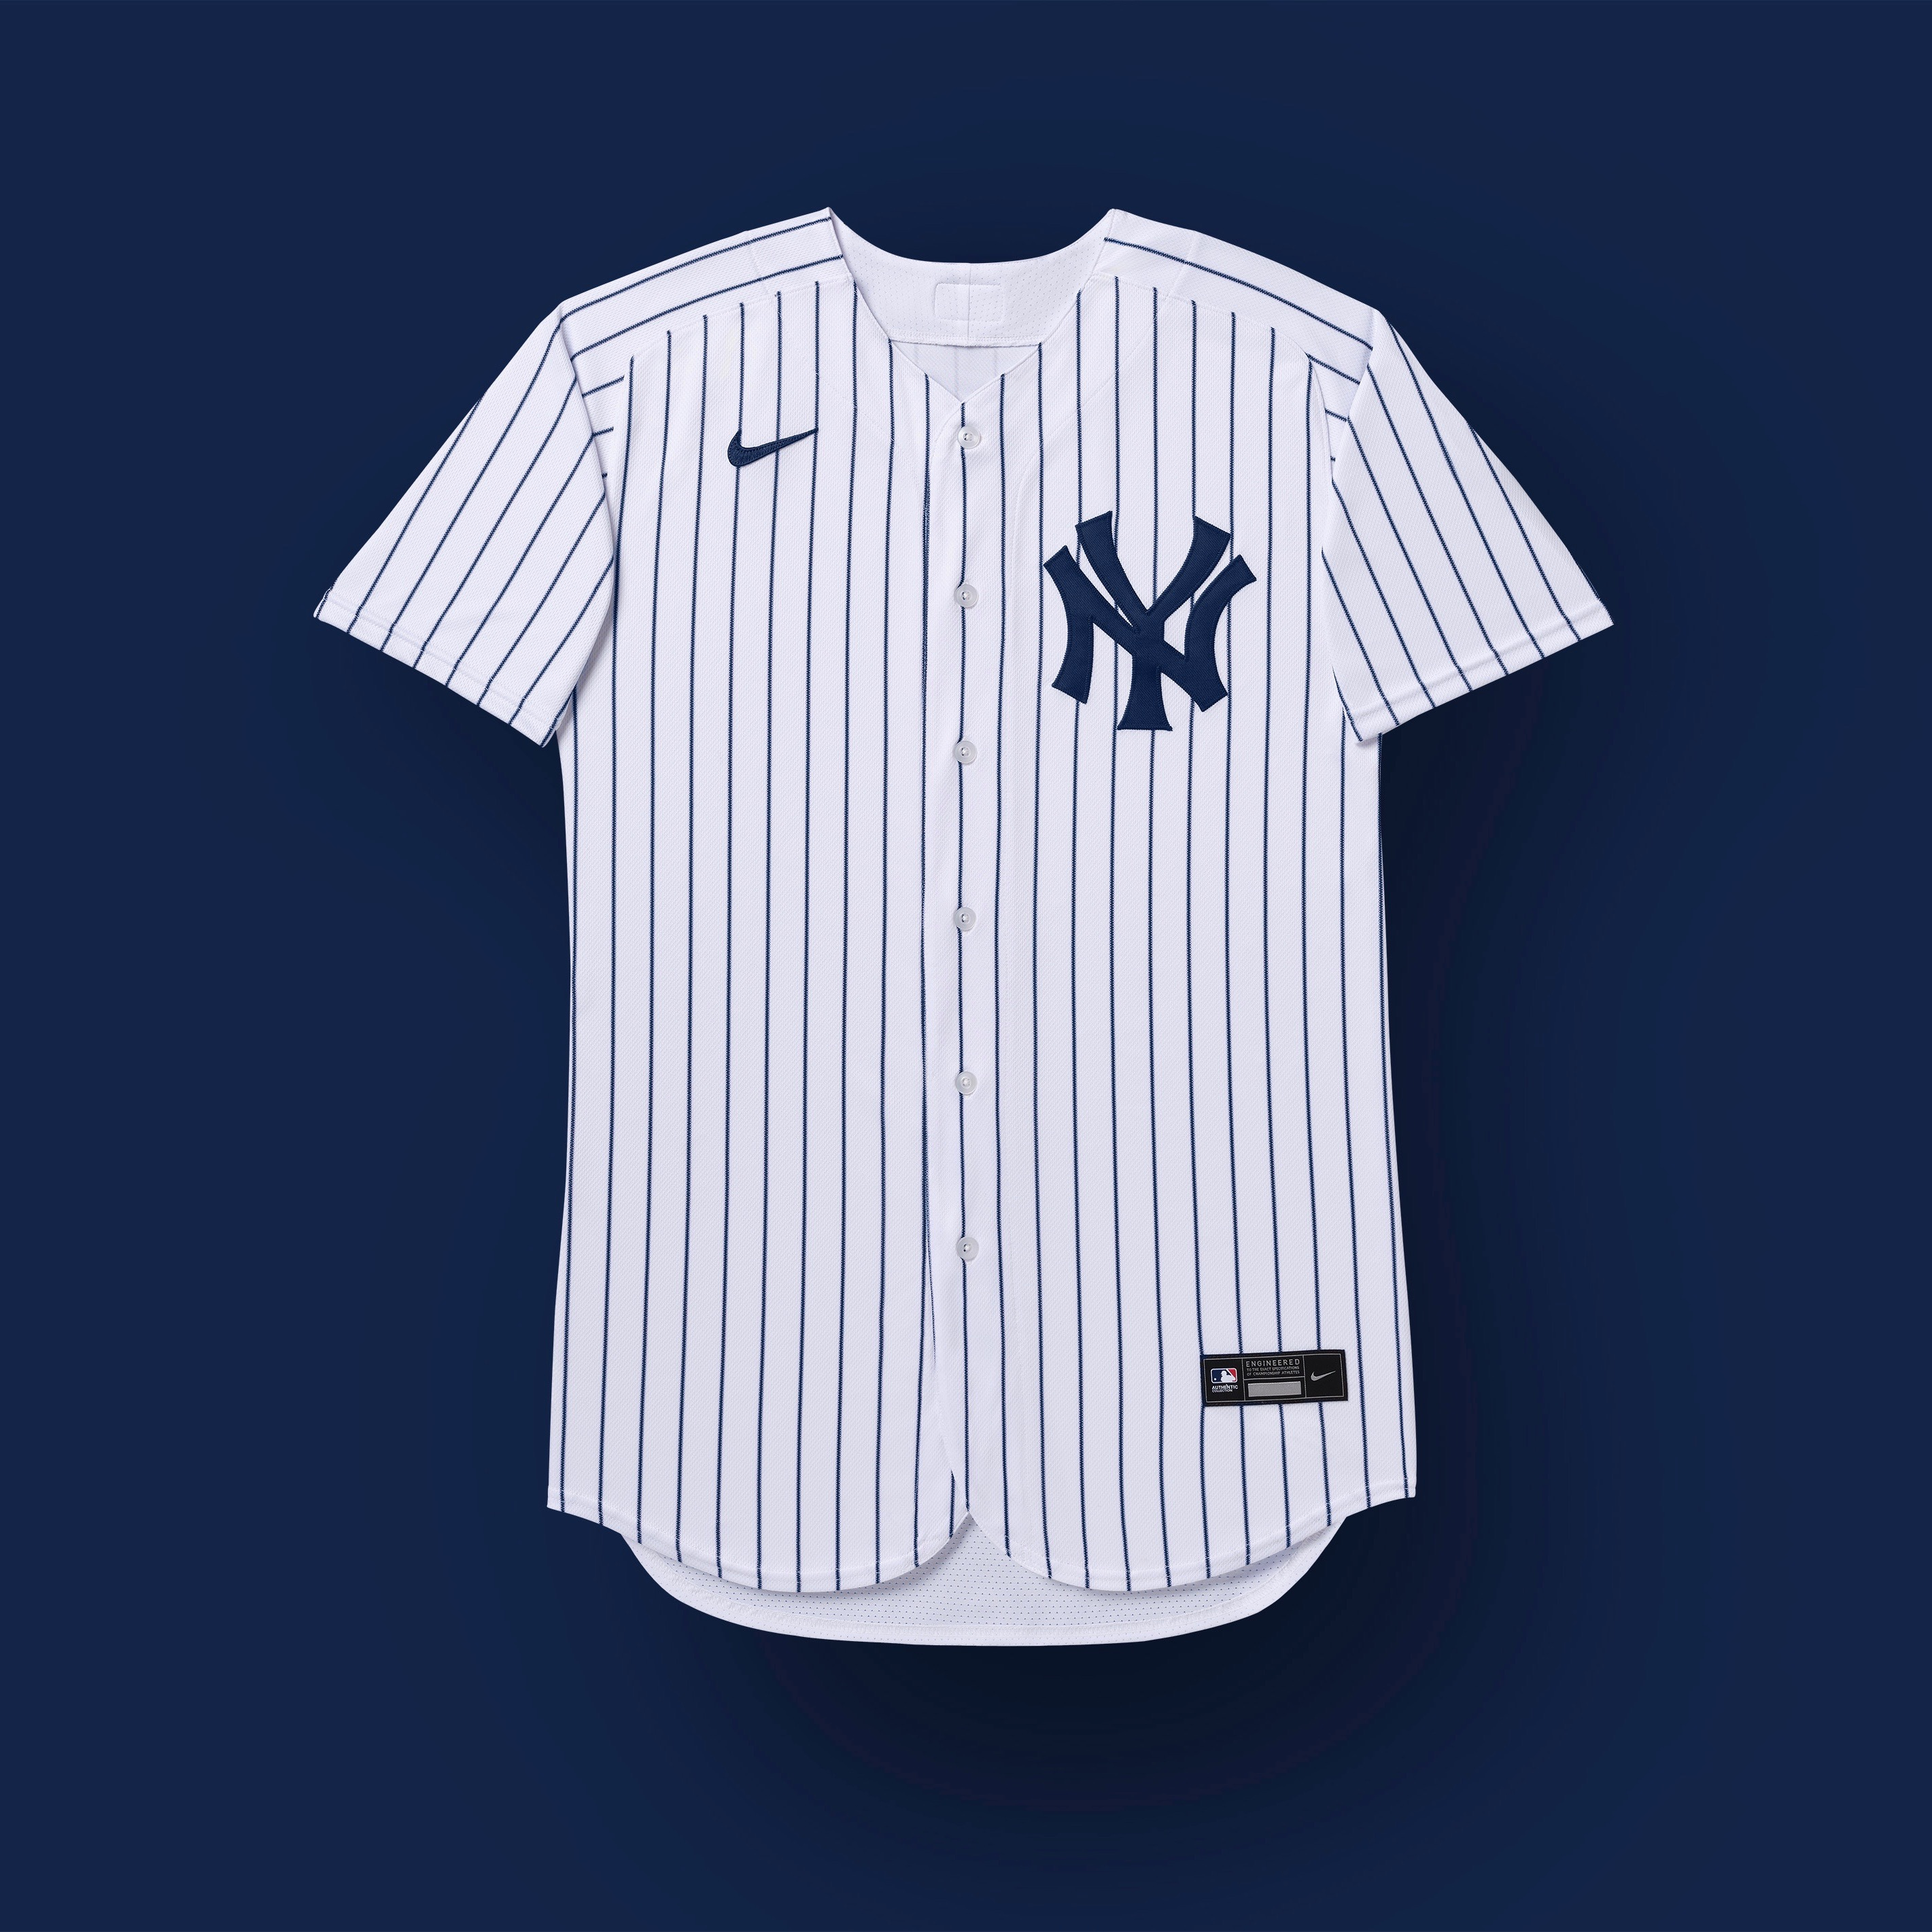 new york yankees 2020 uniforms